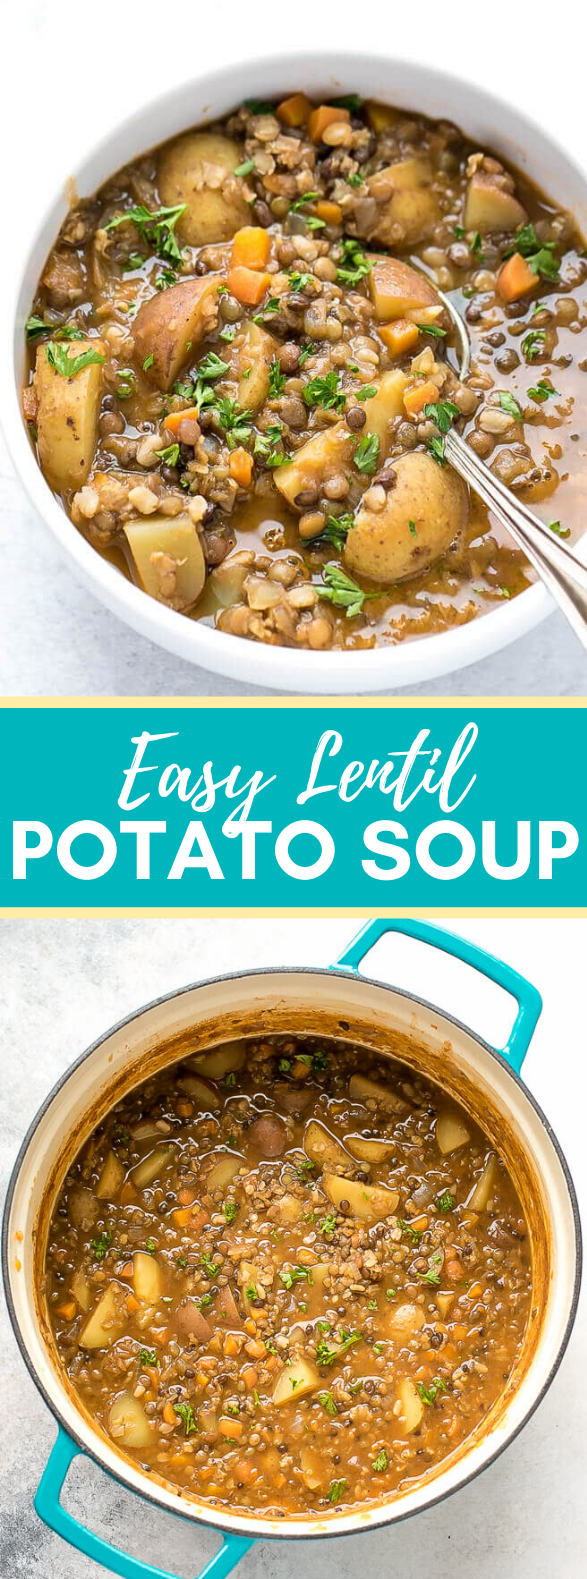 EASY LENTIL POTATO SOUP RECIPE #dinner #comfortmeal